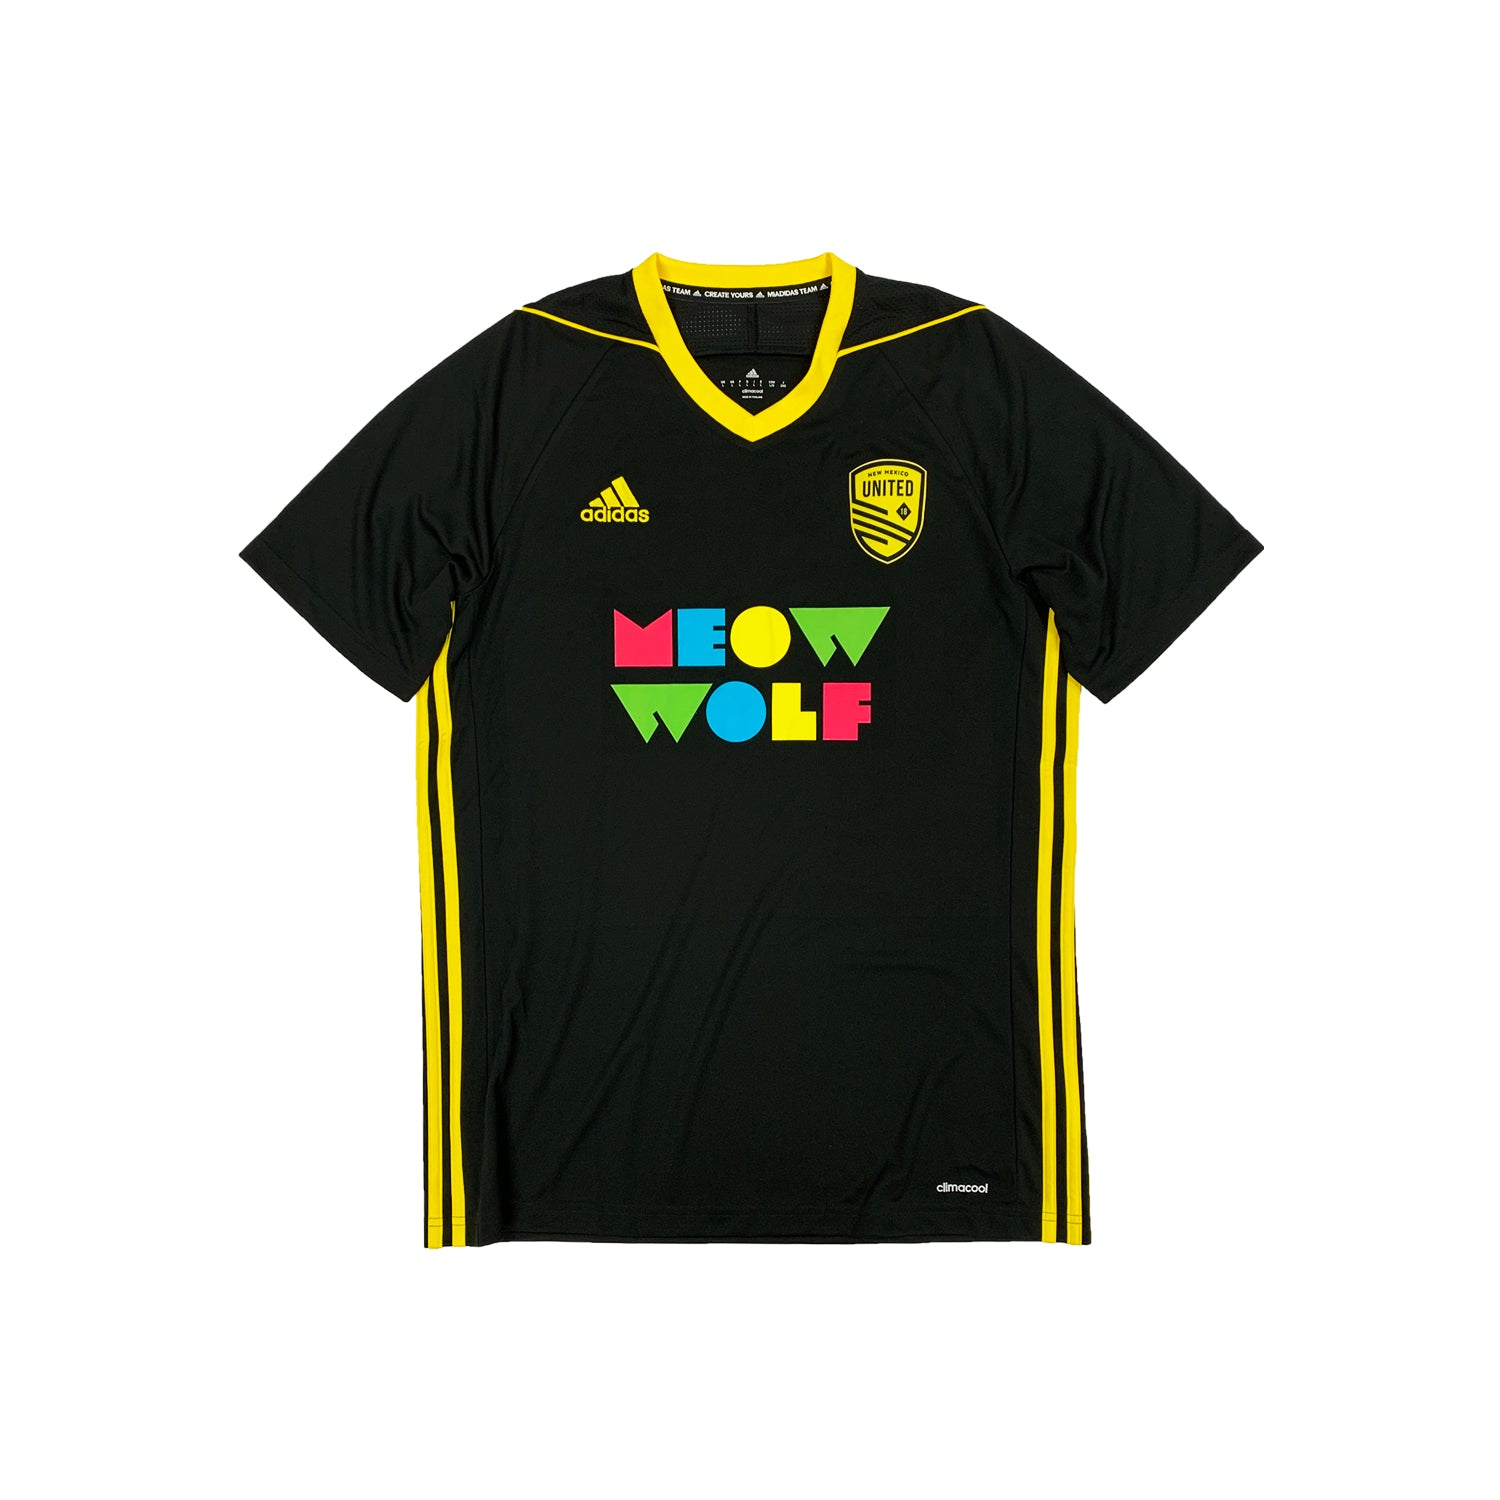 New Mexico United Youth 2019 Meow Wolf Home Jersey